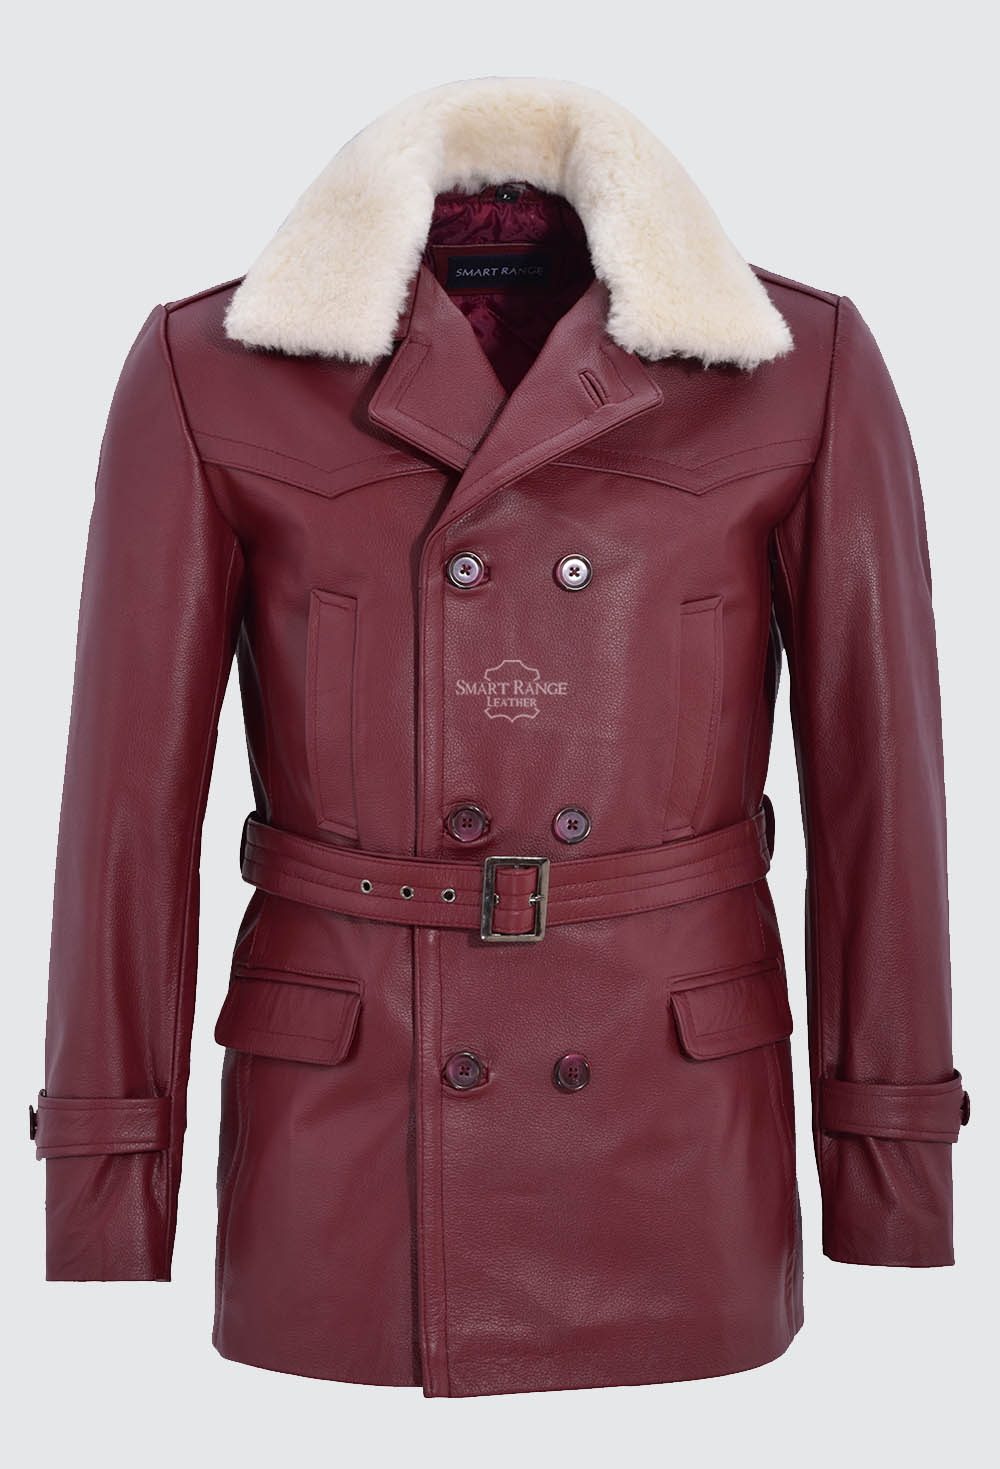 Dr- Who Leather coats, Leather coats, Classic WW2 coats, German Leather coats